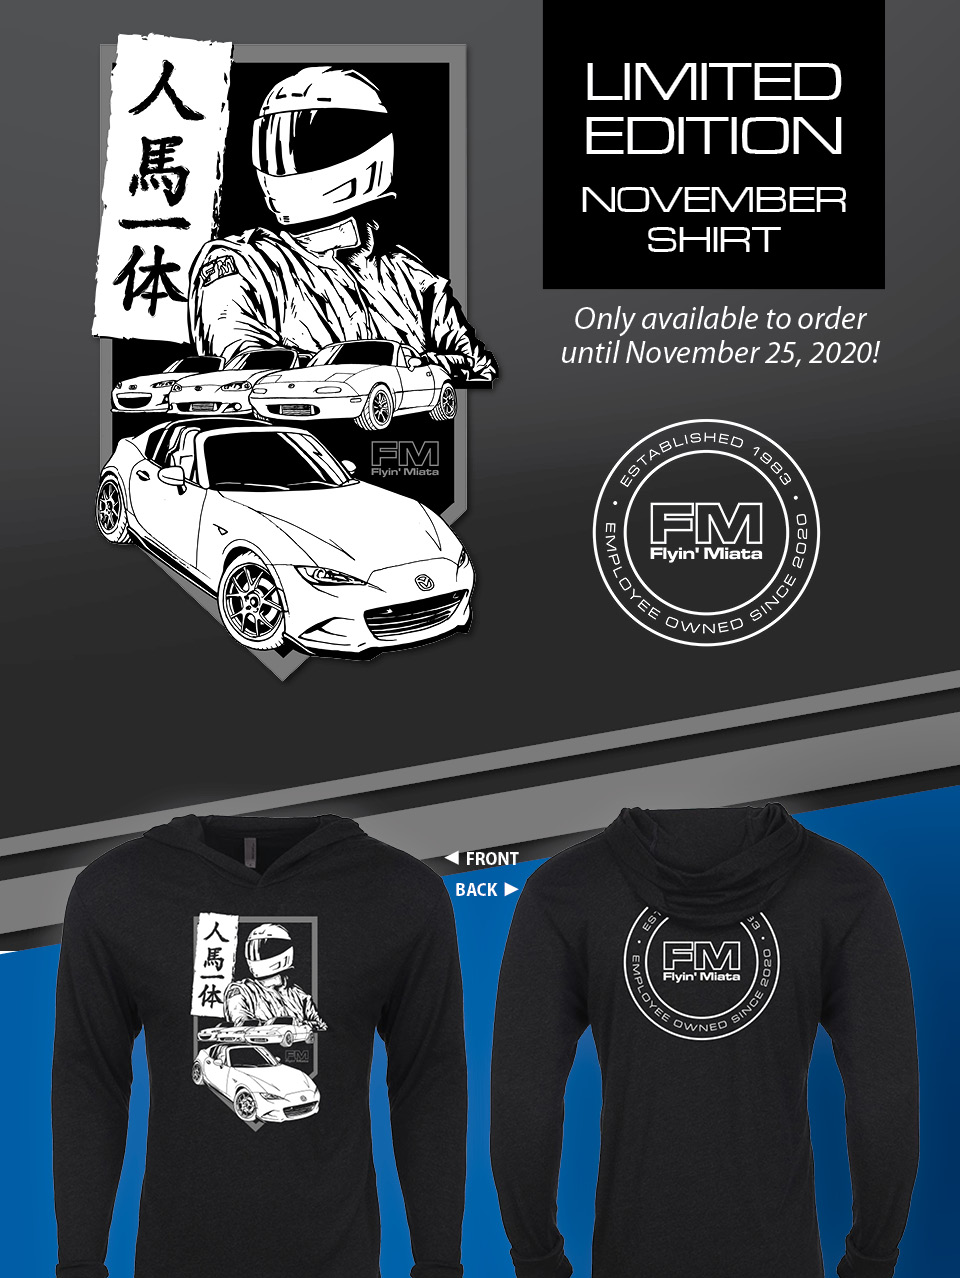 NEW Limited Edition November Shirt!